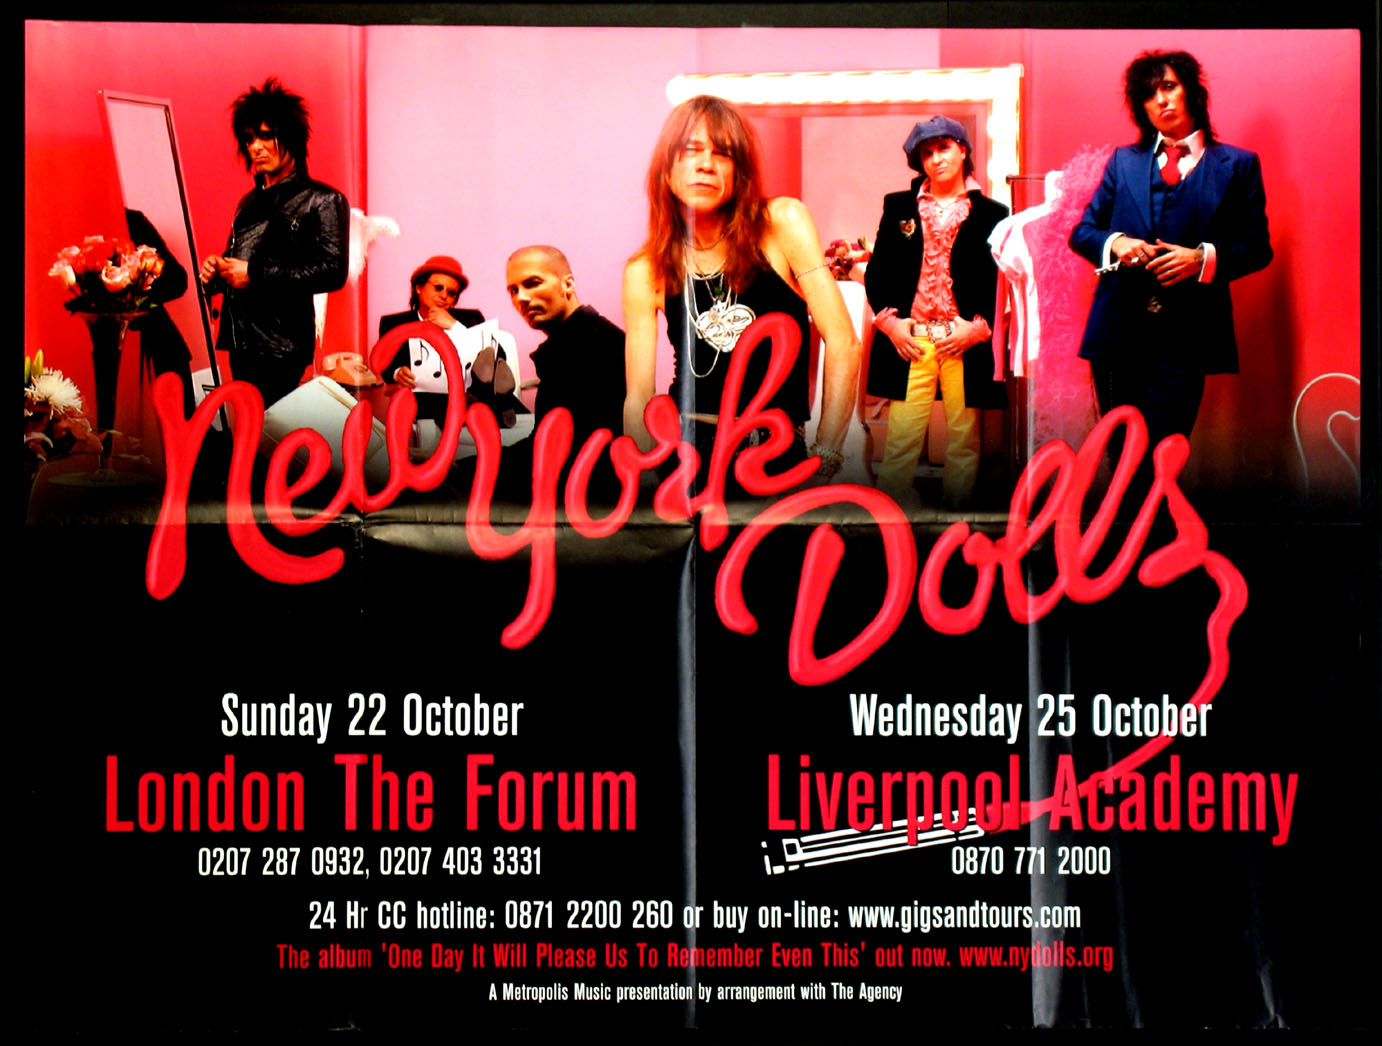 THE NEW YORK DOLLS ORIGINAL 2006 CONCERT POSTER @ FilmPosters.com